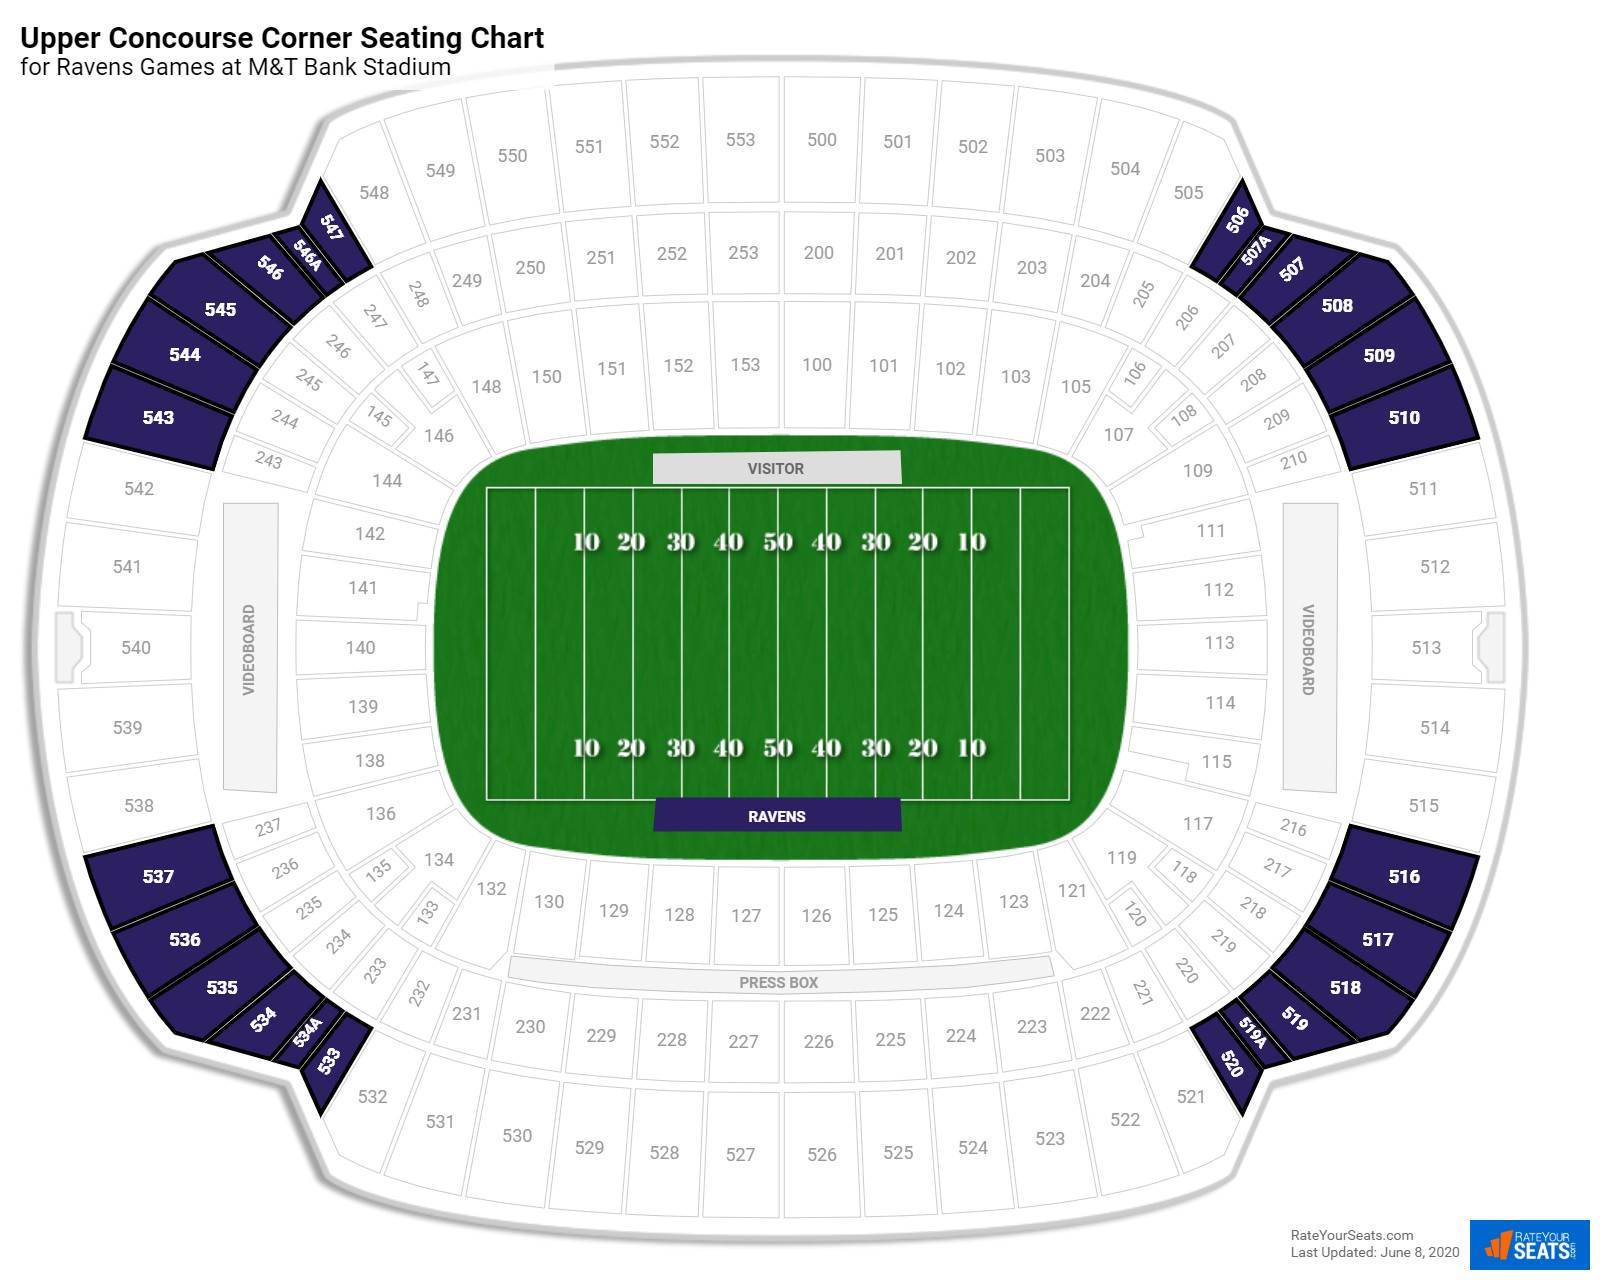 M&T Bank Stadium Upper Concourse Corner seating chart